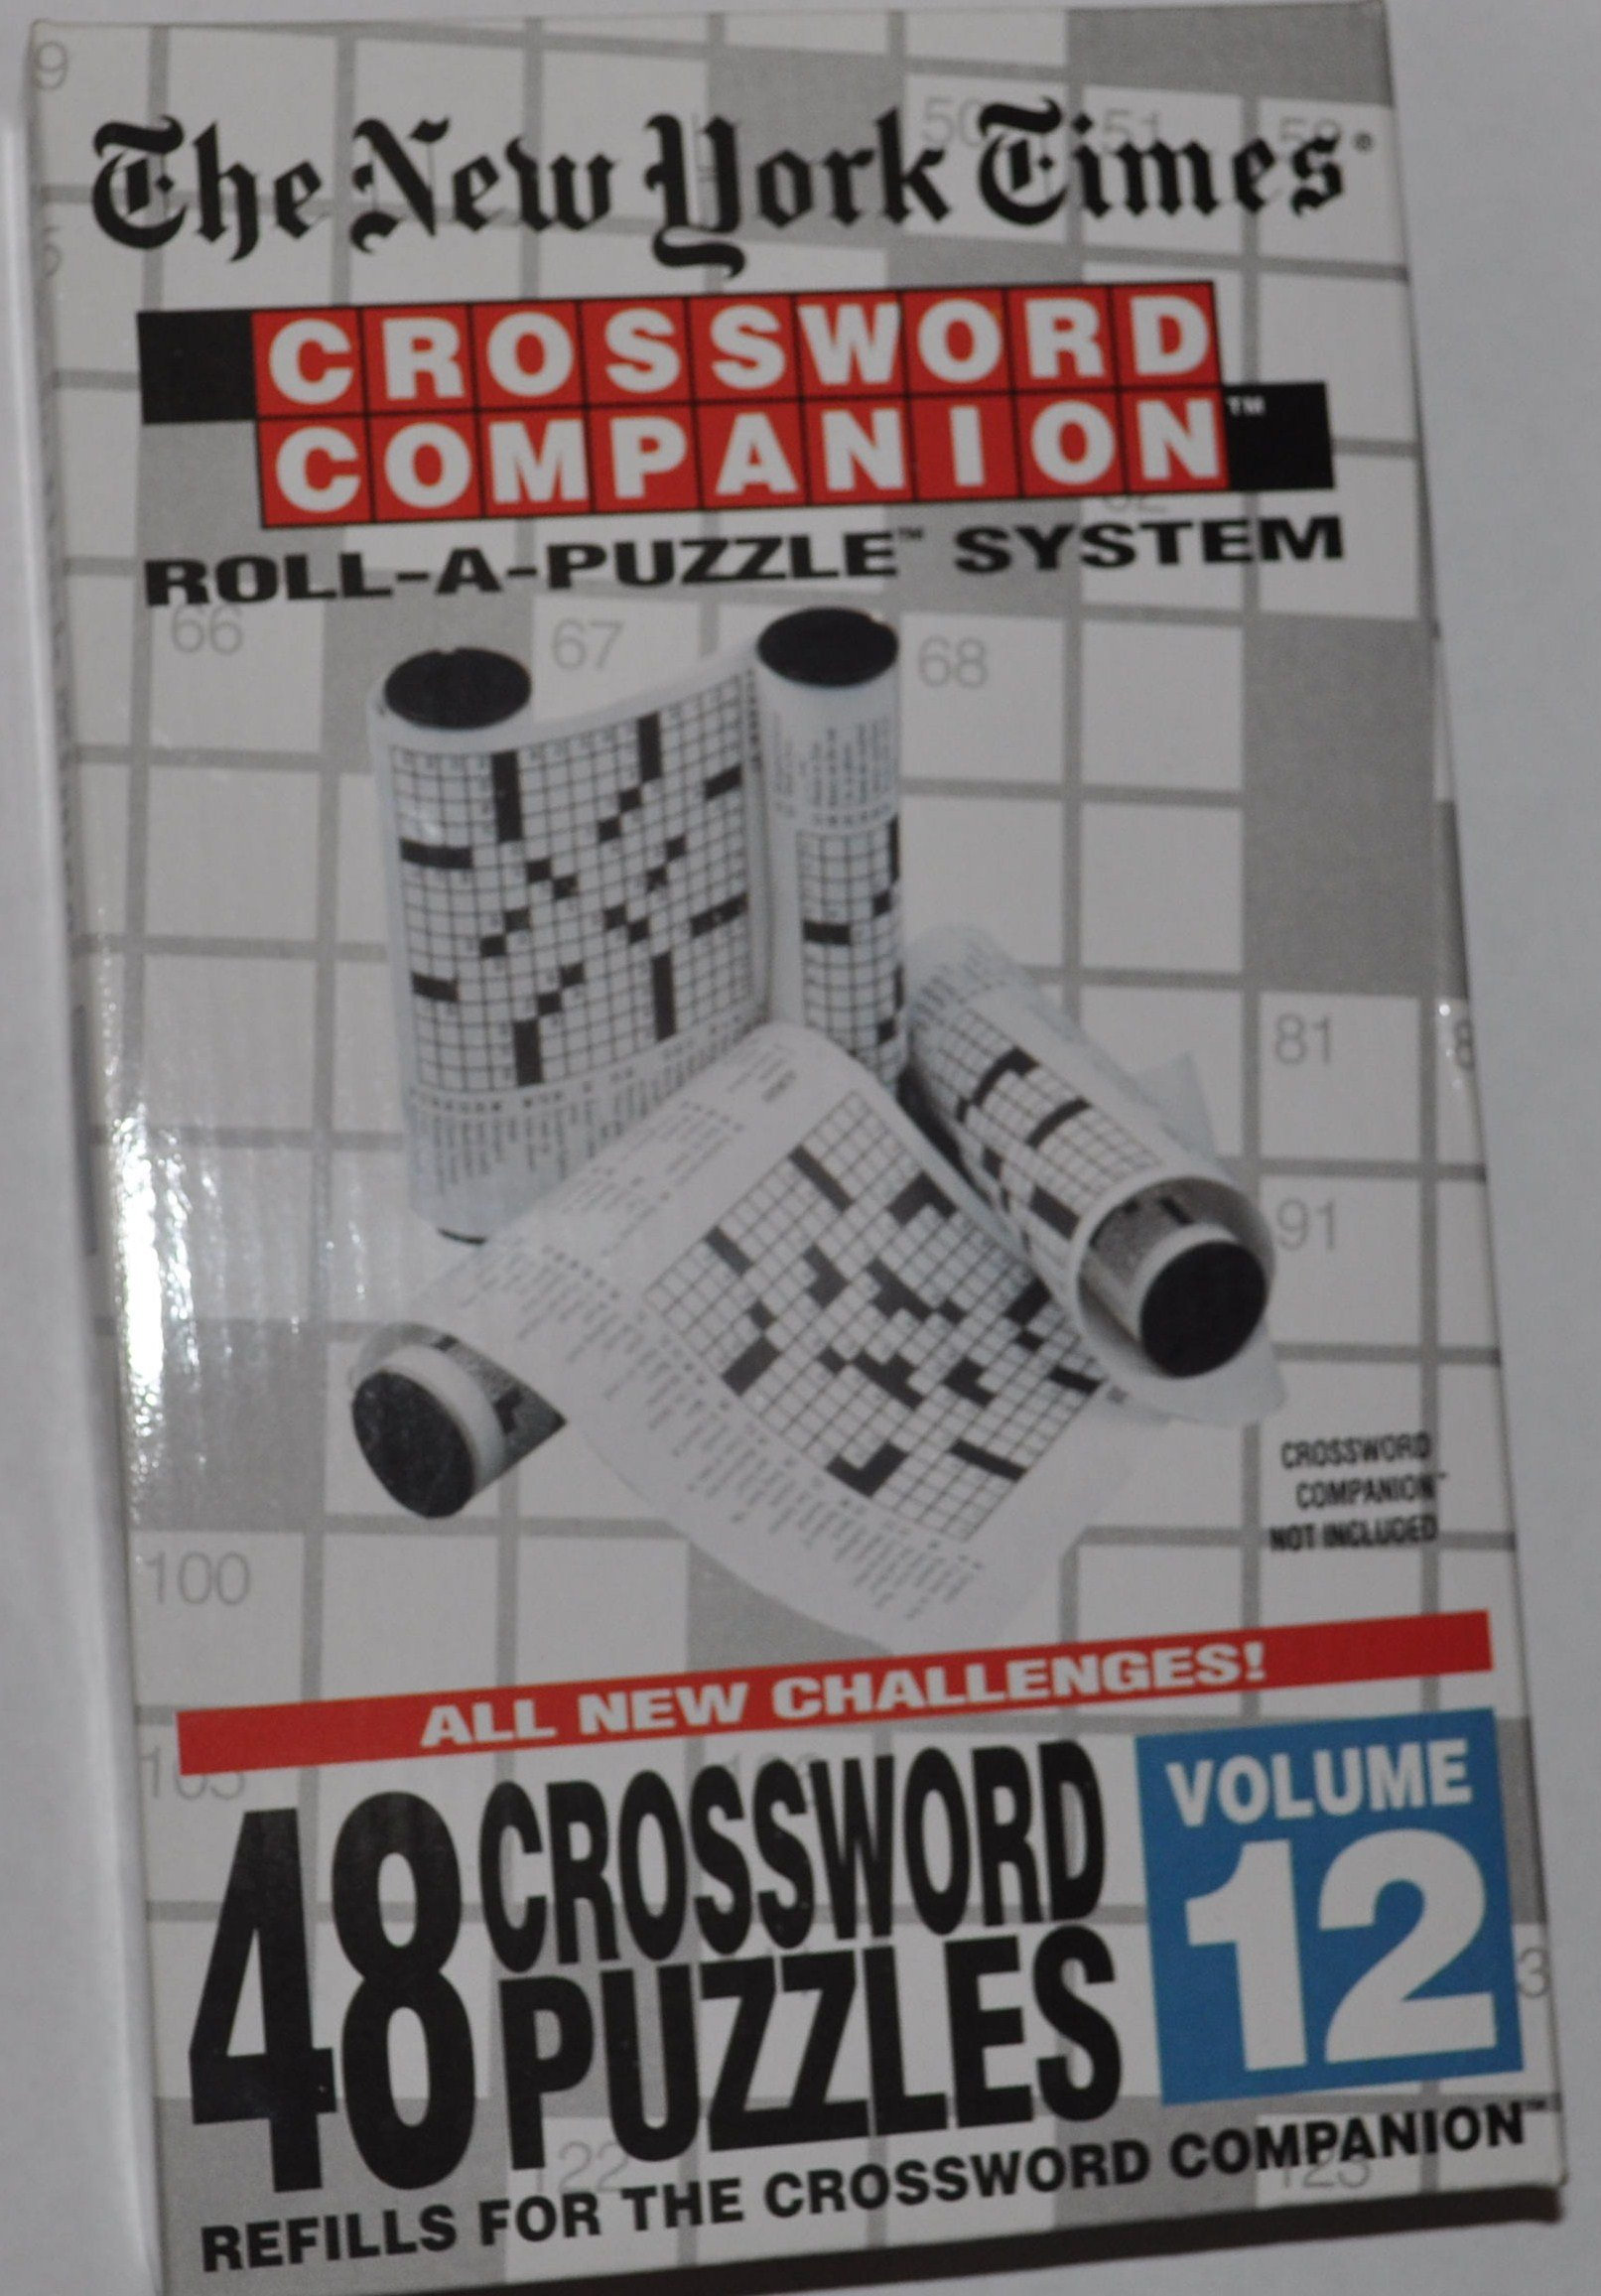 The New York Times: Crossword Companion Roll-A-Puzzle Refills Volume 12